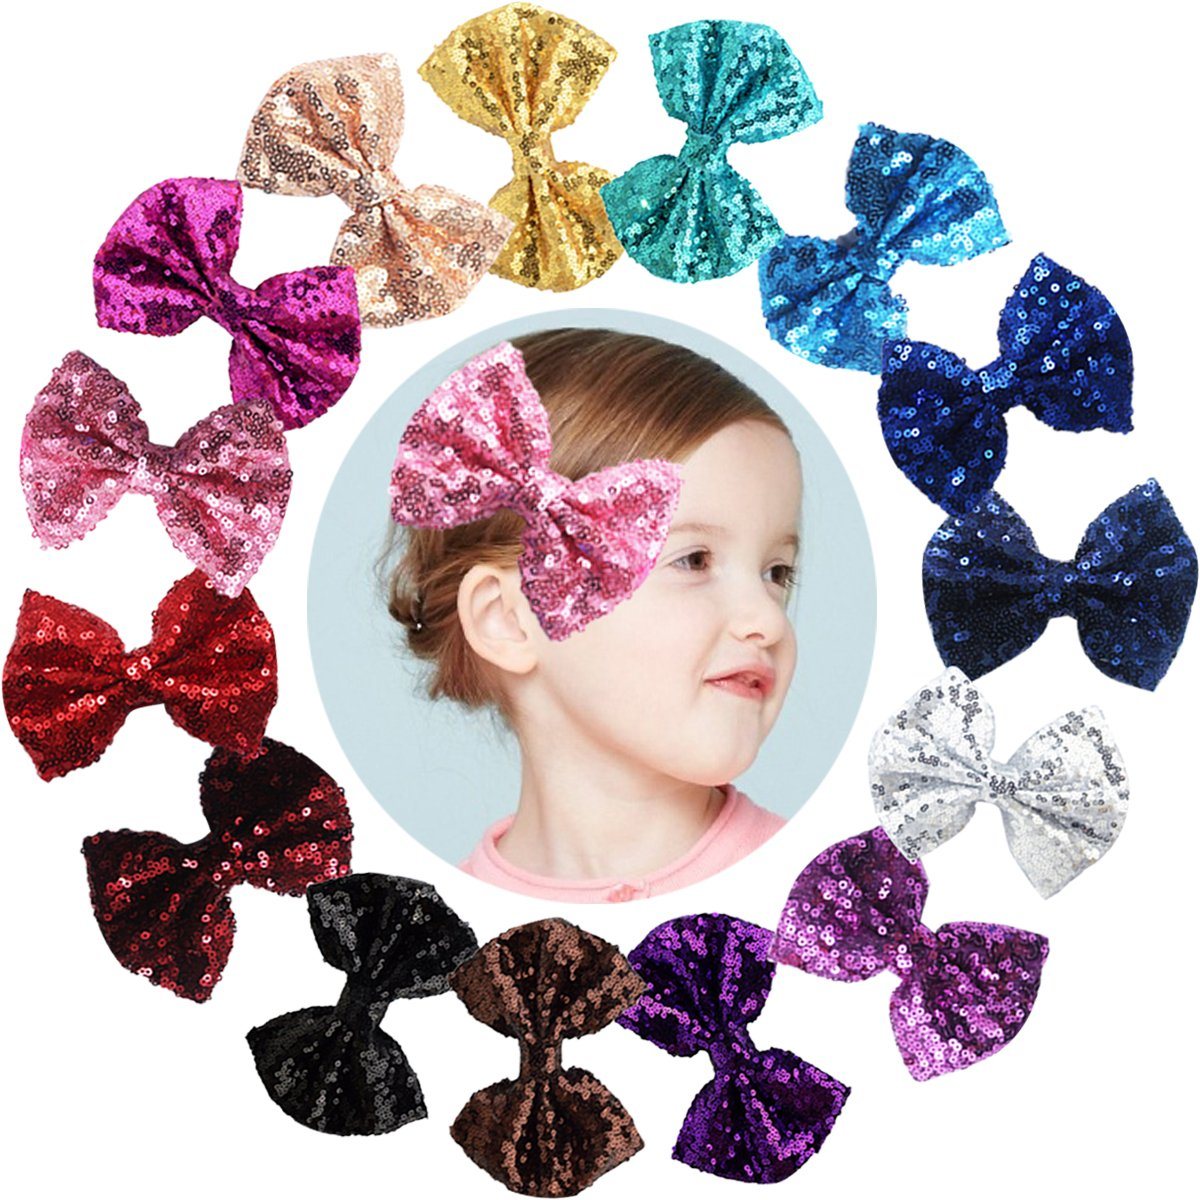 CELLOT Party Hair Bows Clips for Girls-15pcs Bling Sparkly Glitter Sequins Big 4' Hair Bows Alligator Hair Clips-Nylon Mesh Ribbon Bowknot Hairpins for Baby Girls Kids Children